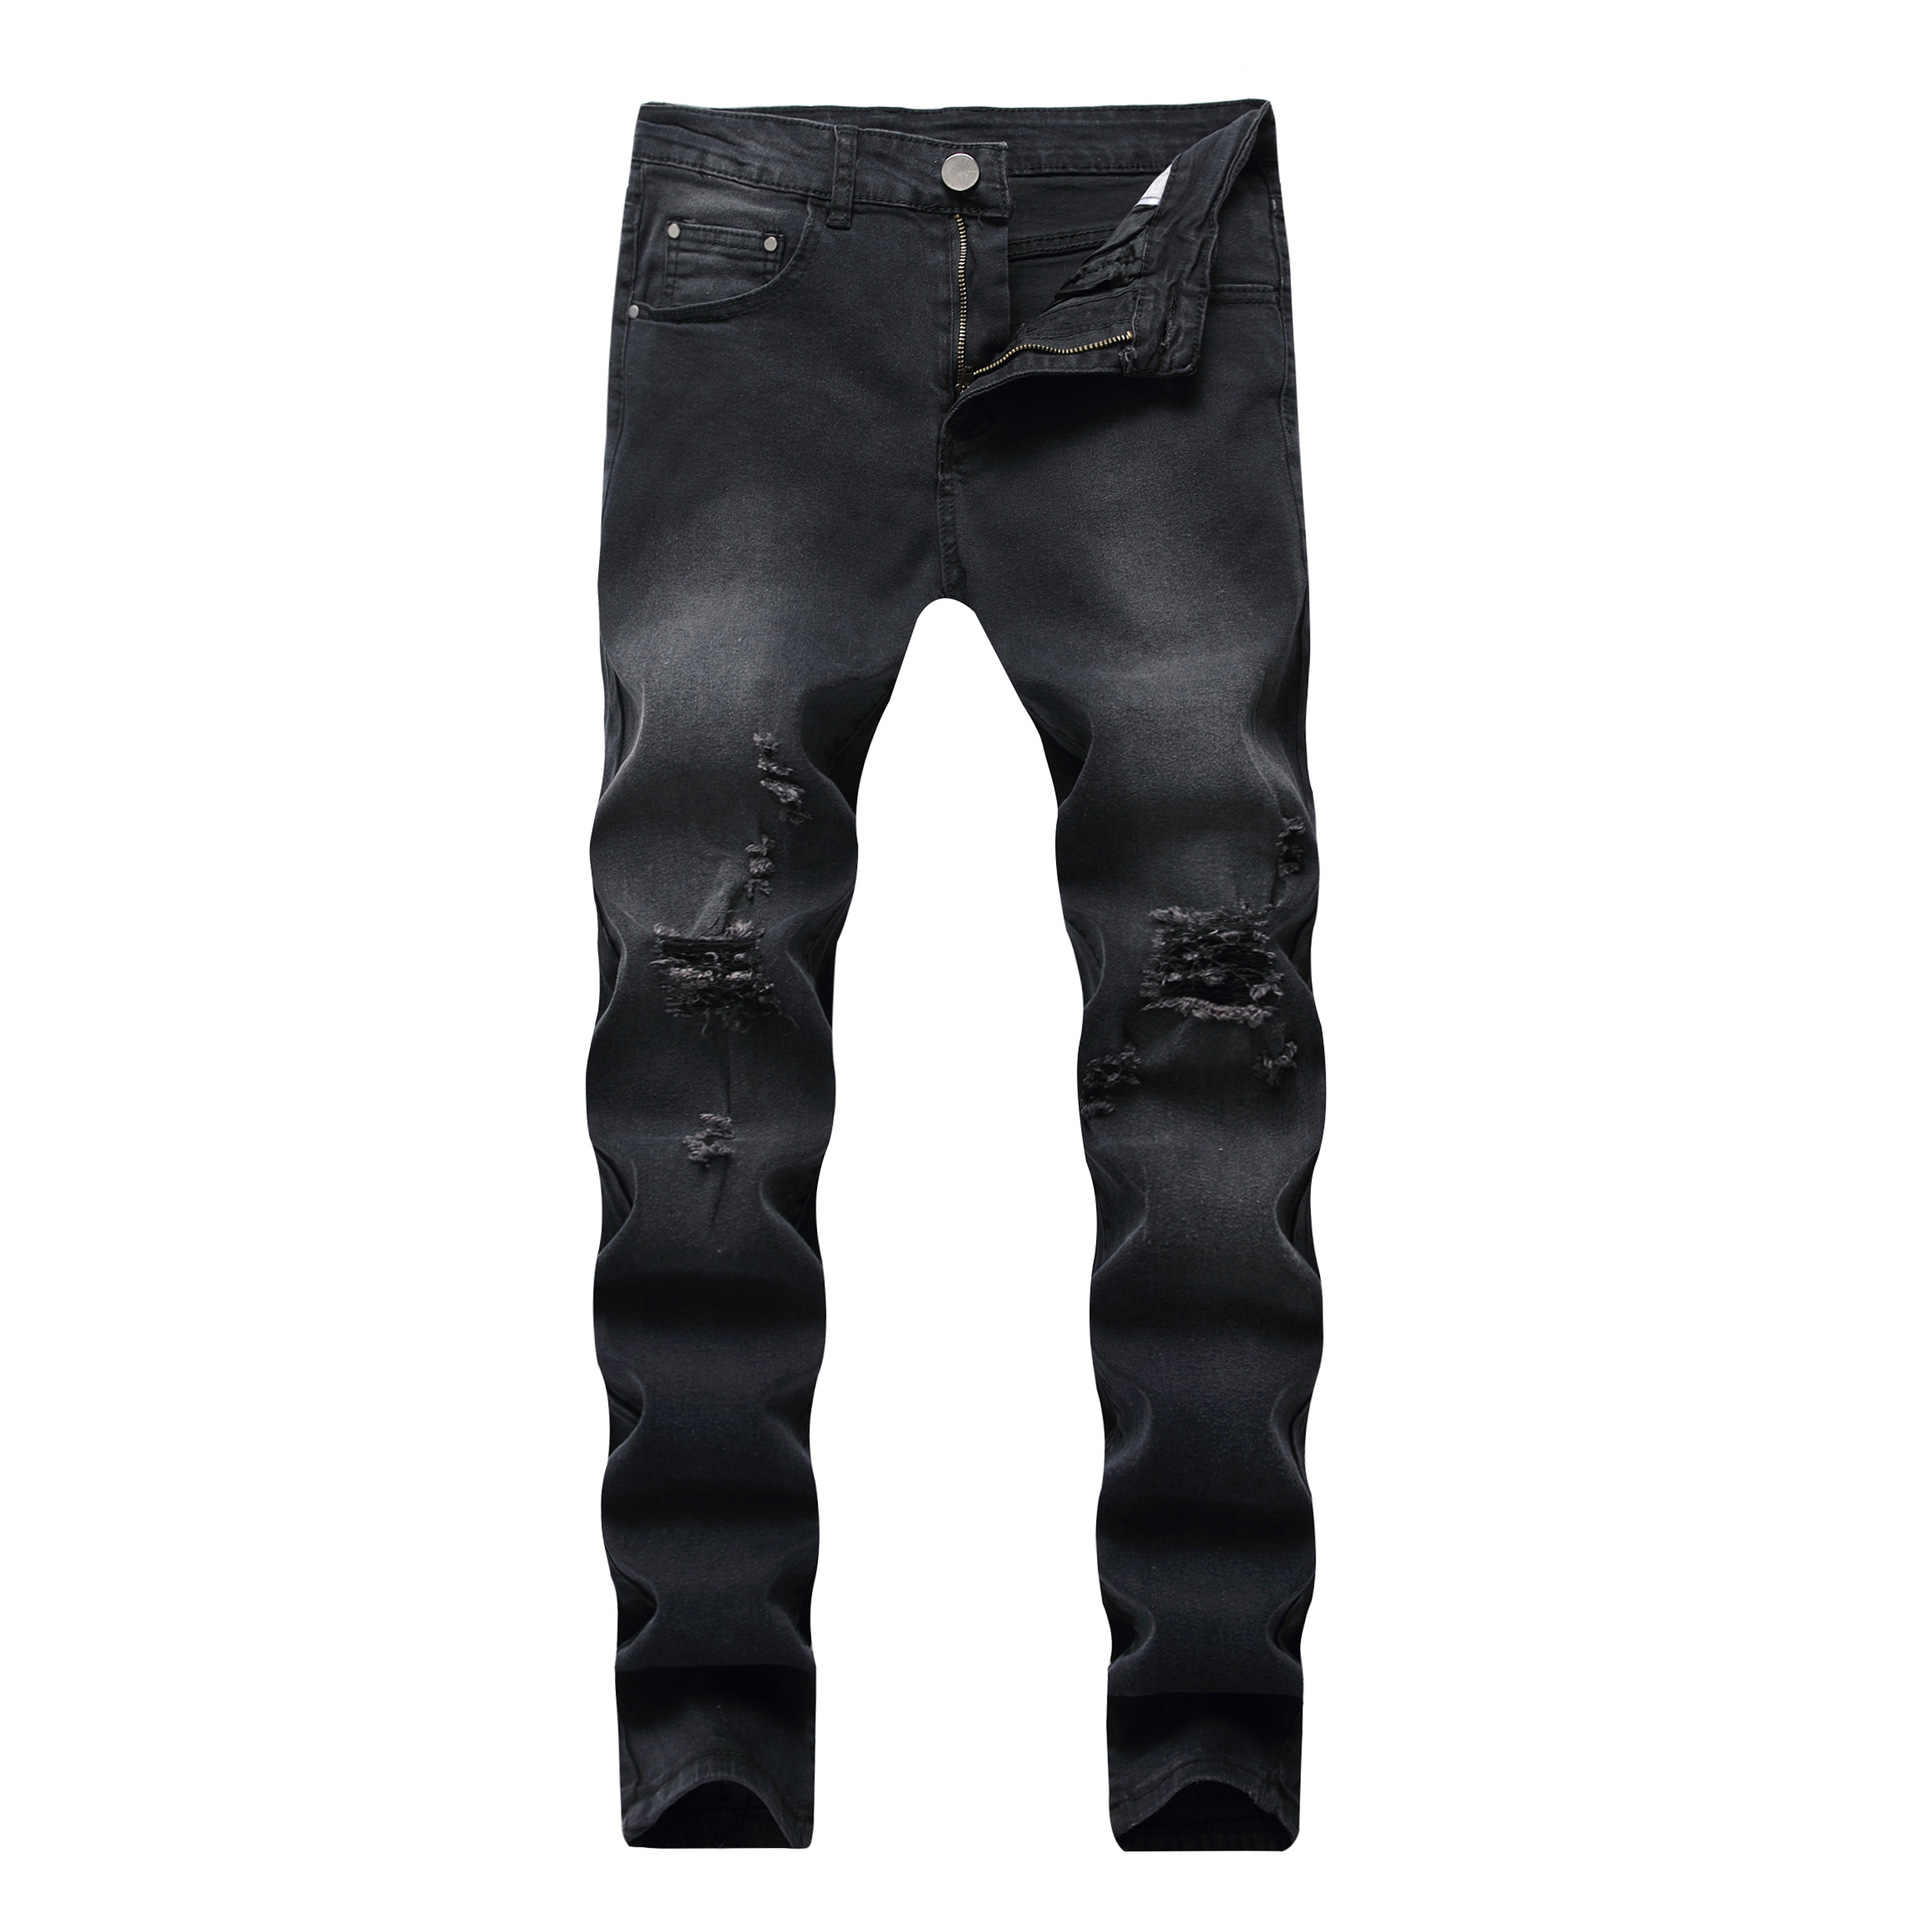 Mens Hole Casual Jeans Slim Tight Wash Trousers Denim Washed Ripped Stretch Full Length Pants Straight Hip Hop Vintage Jeans